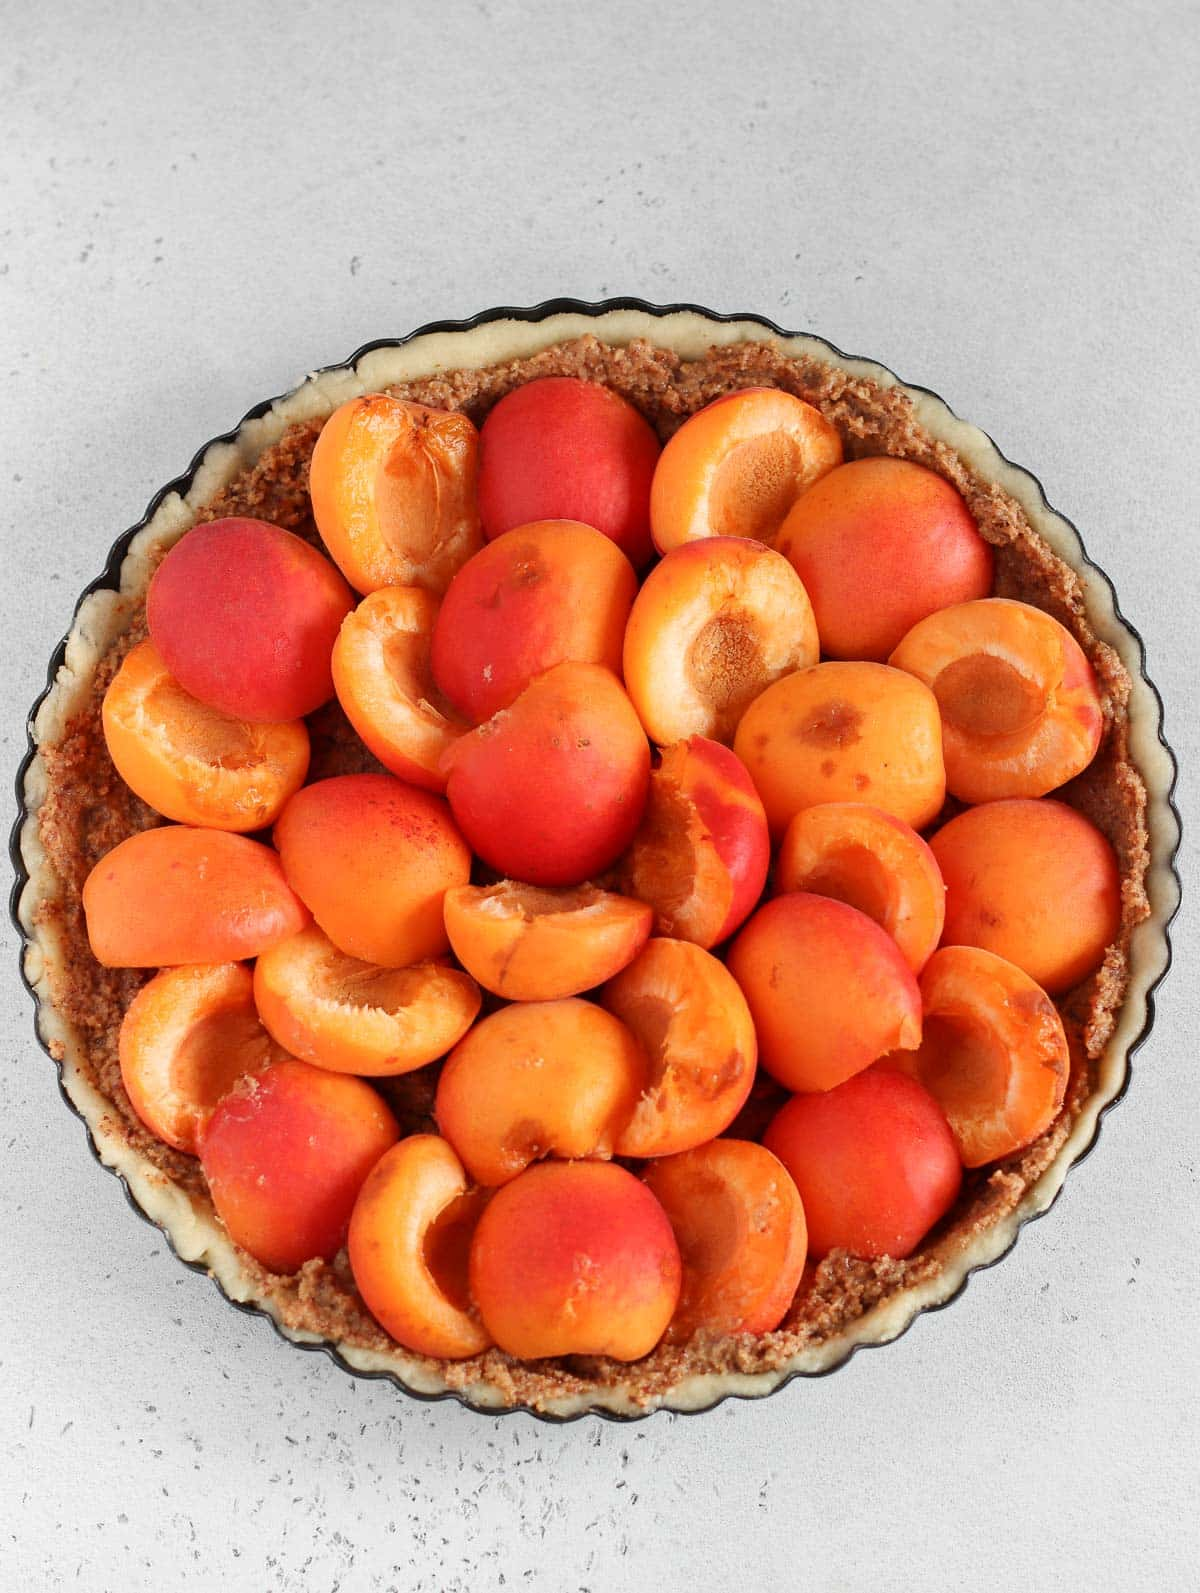 putting the apricots on the apricot tart